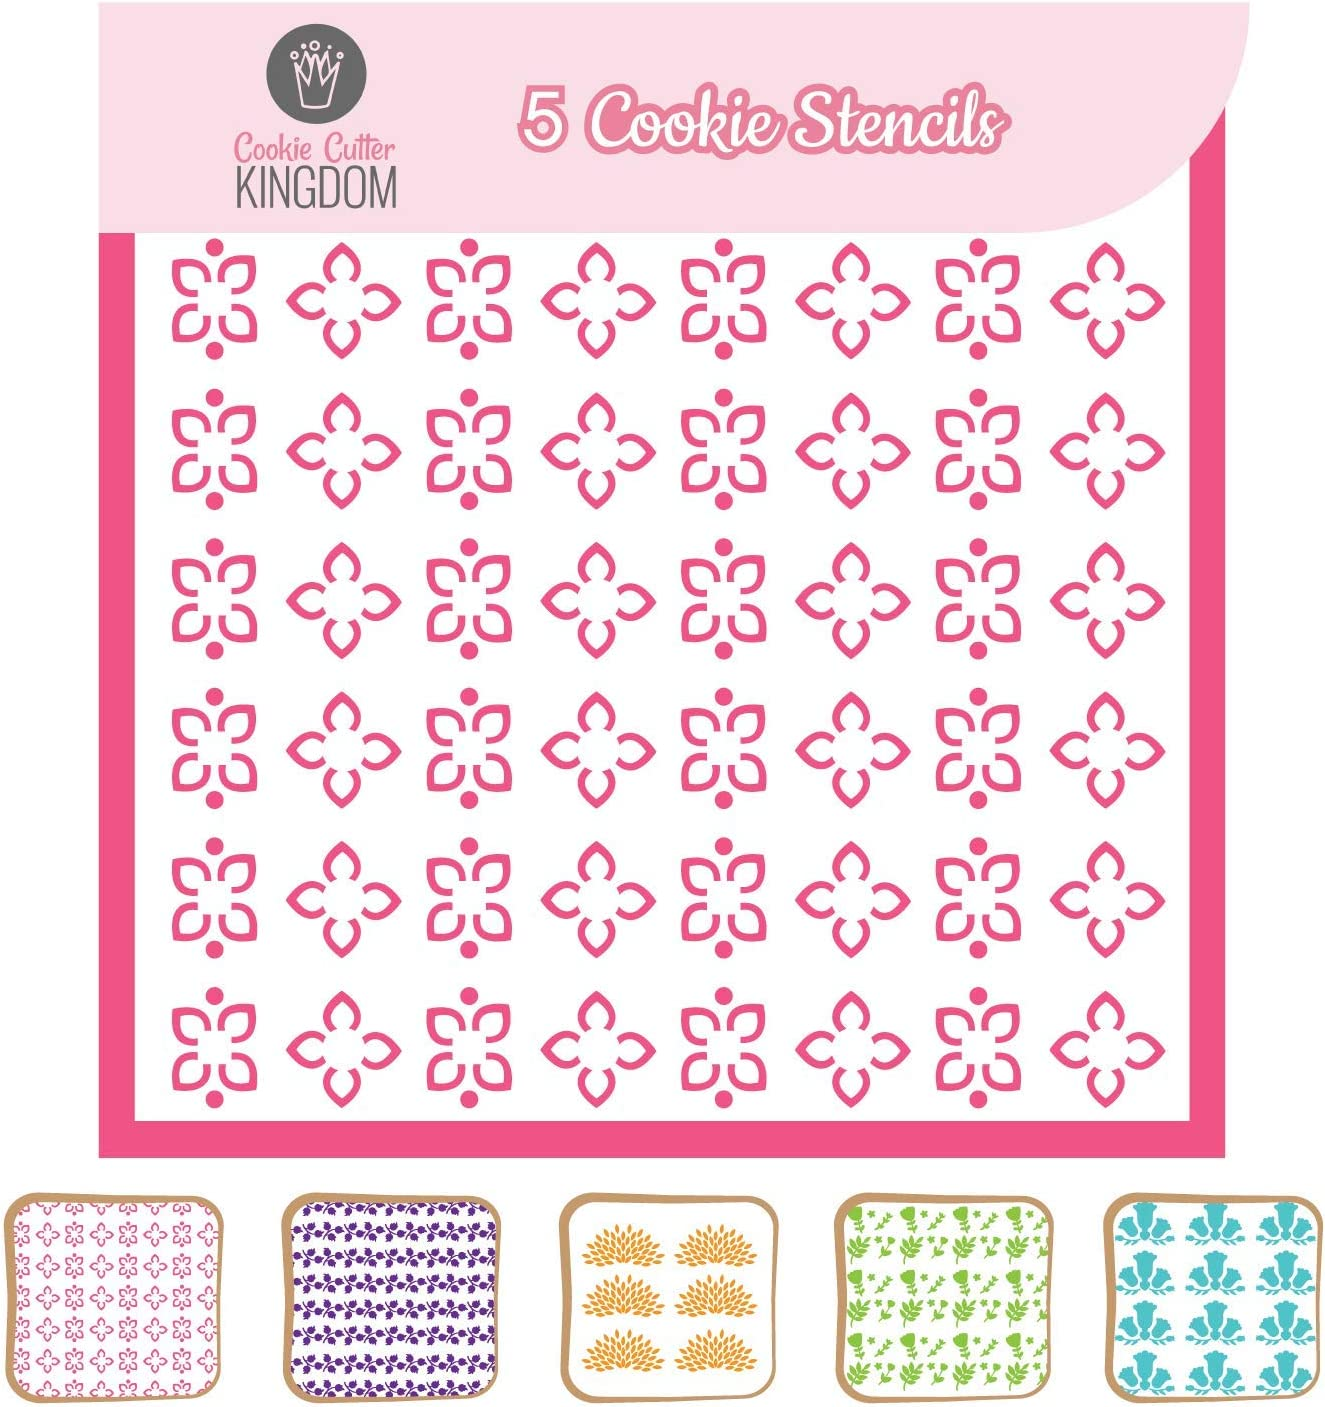 Flower Cookie Stencil for Food Decorating. 5 Piece Cookie Cutter Kingdom Stencil for Royal Icing or Food Spray. 5.5 x 5.5 Inch Size. Summer and Spring Stencil.